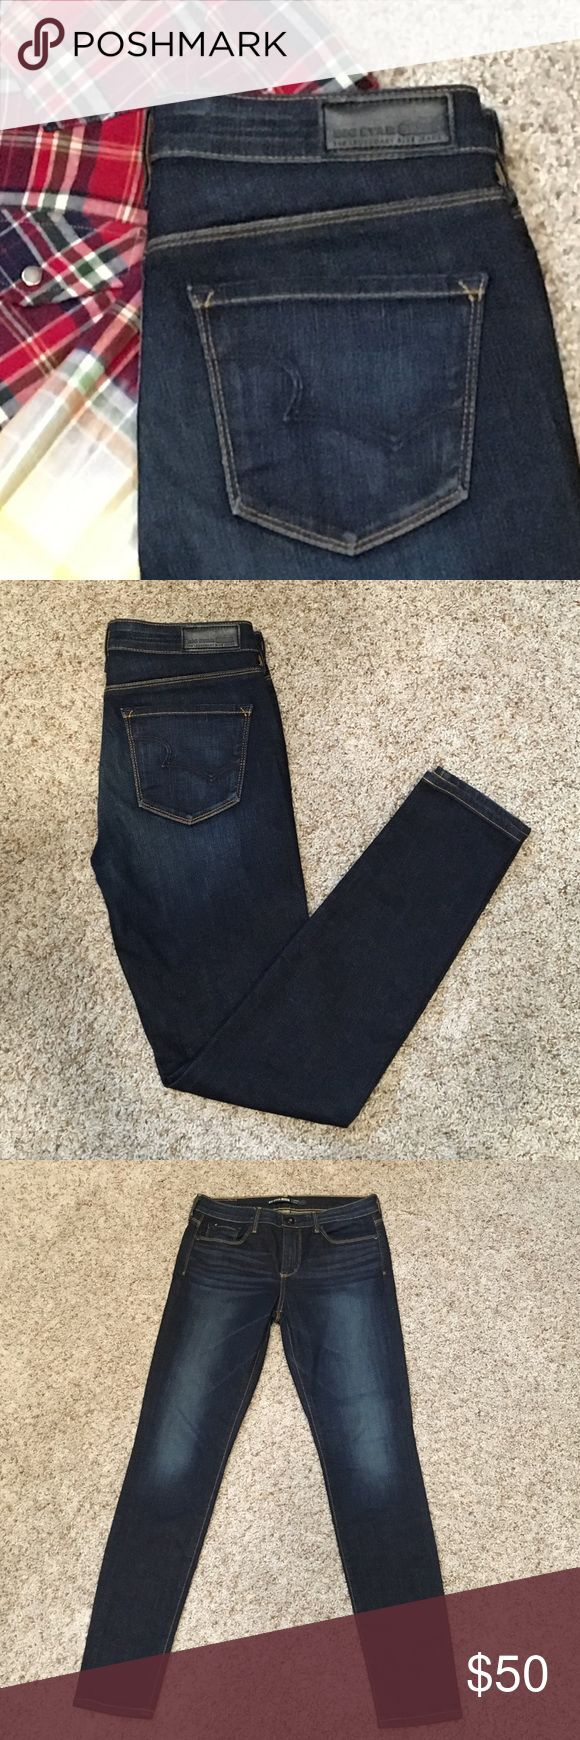 """Big Star Andrea Skinny Jeans These NWOT Big Star Andrea Skinny jeans feature: a dark wash, a flattering back pocket design, mid-rise, and are 92% cotton, 7% polyester, and 1% spandex. They are a size 28 and have a 28"""" inseam. Never been worn!! These are awesome jeans ladies!! Big Star Jeans Skinny"""